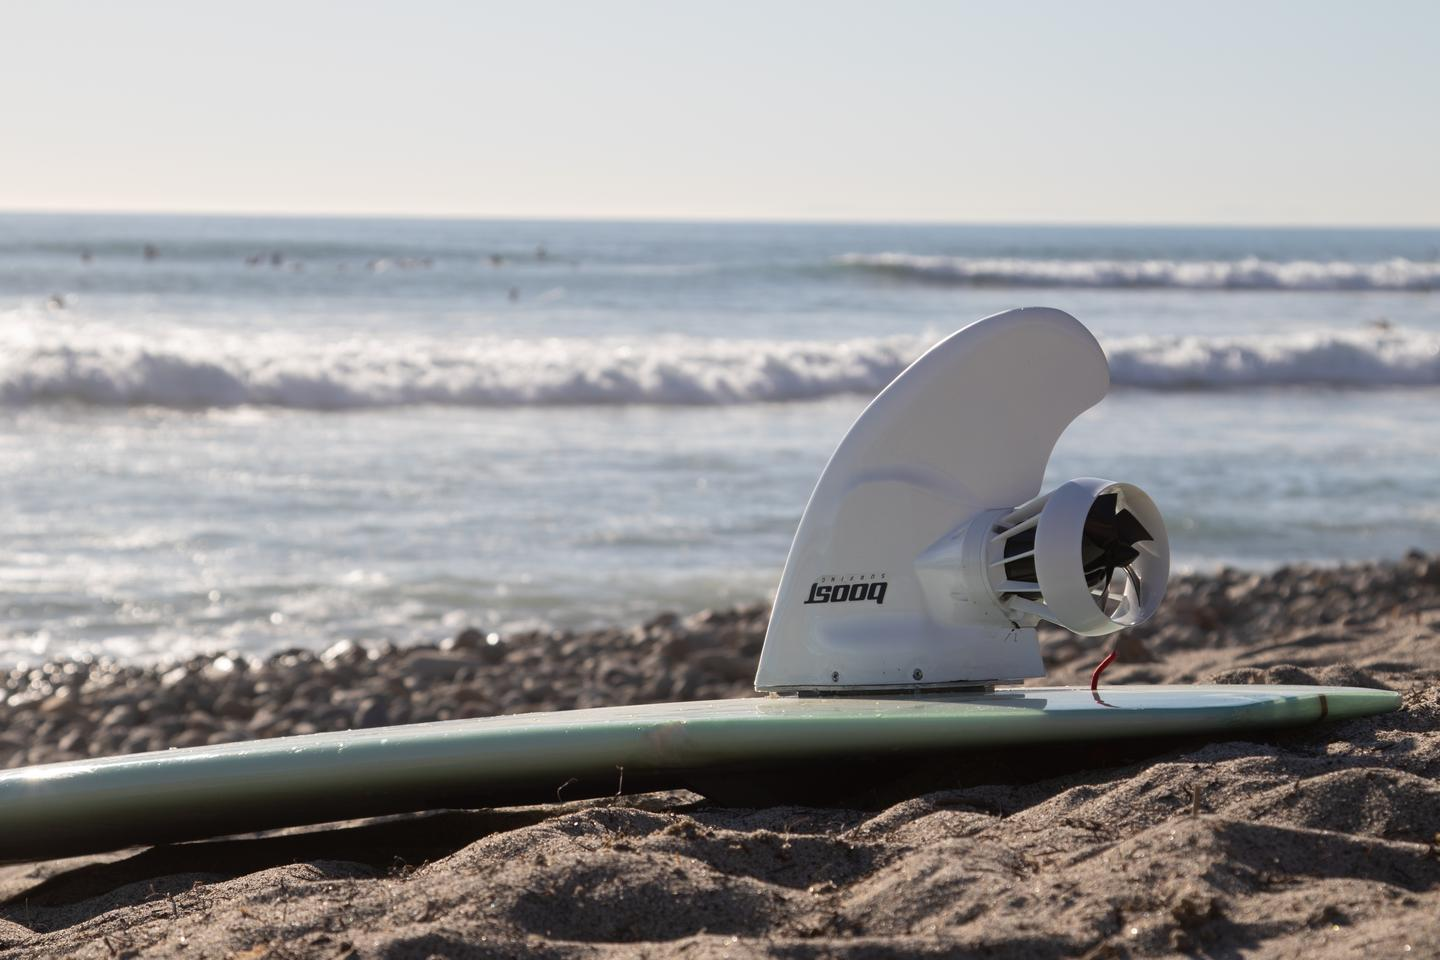 The Boost Surfing Fin takes users to a claimed top speed of 11 mph (18 km/h)